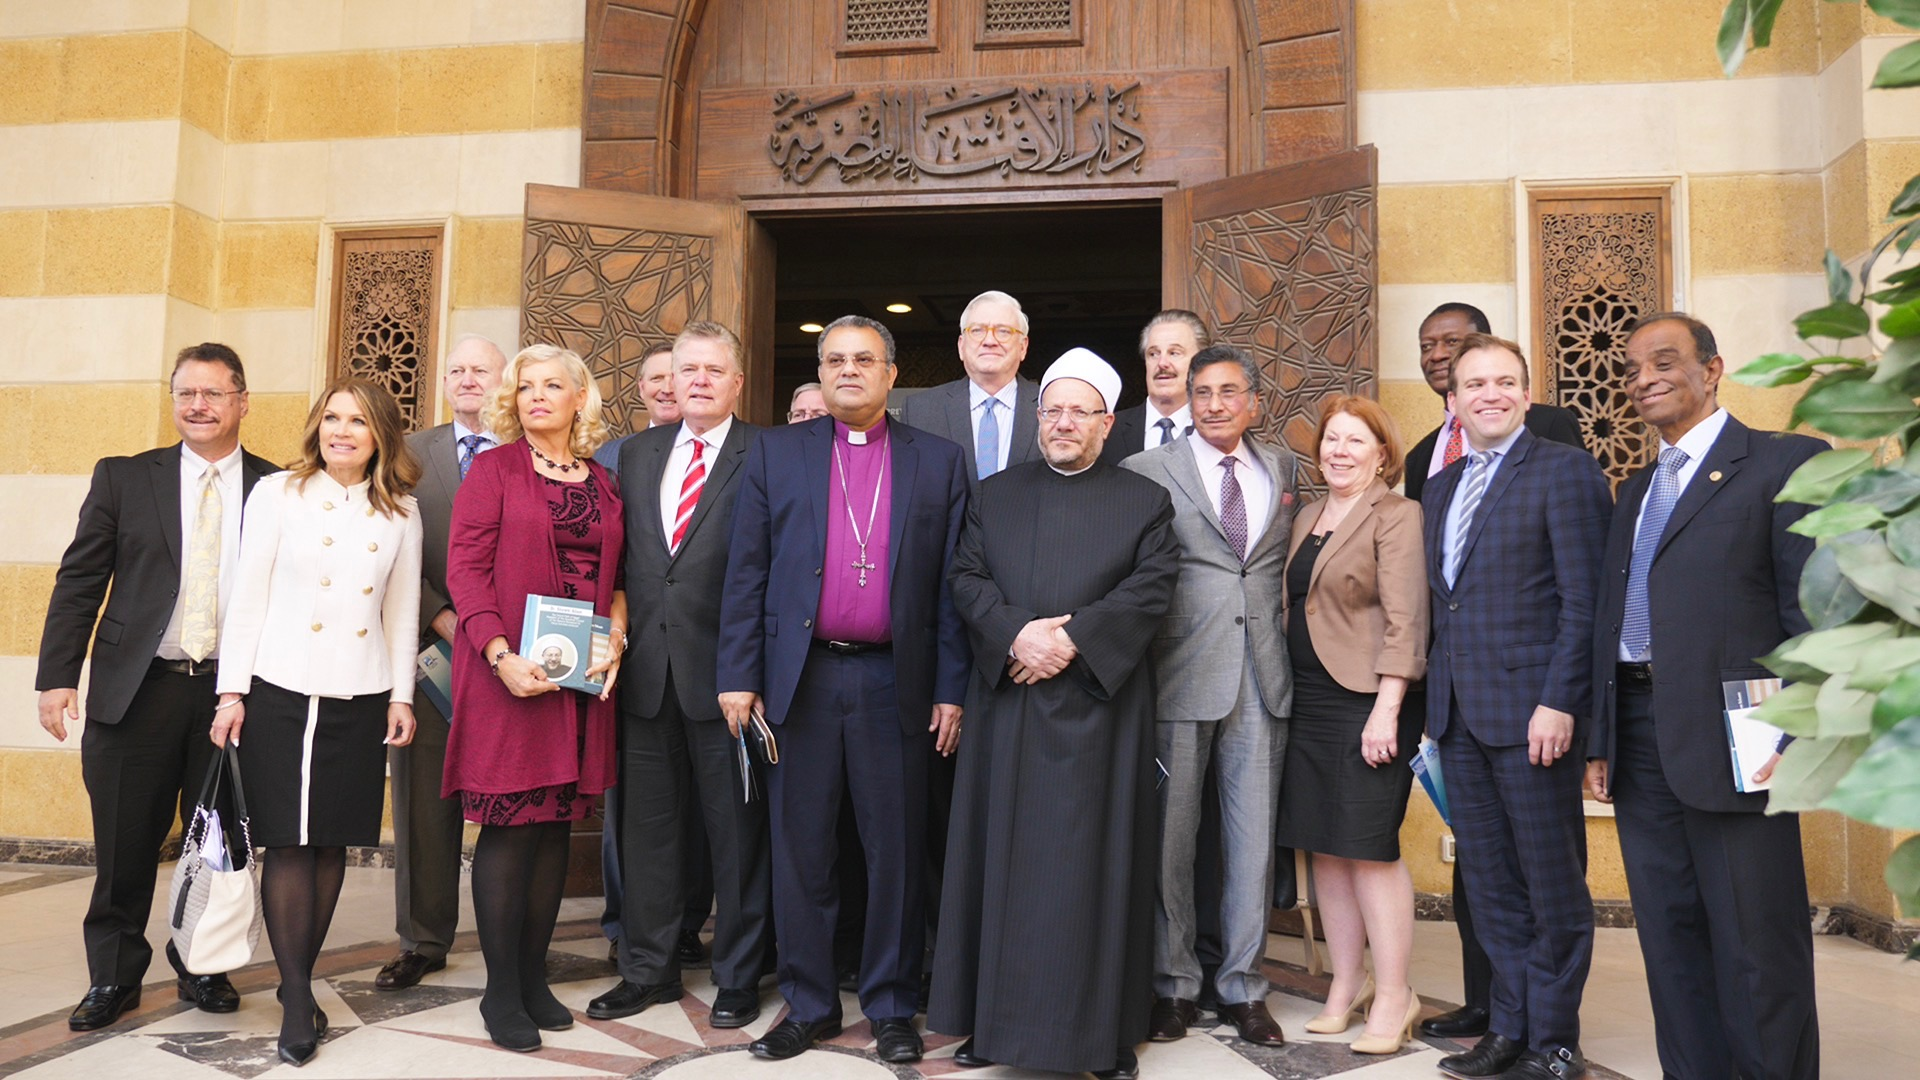 The Grand Mufti Shawqi Allam, the top Islamic scholar in Egypt and the region in charge of theological interpretation of cases before the civil court, meets with a delegation of American Evangelical leaders.